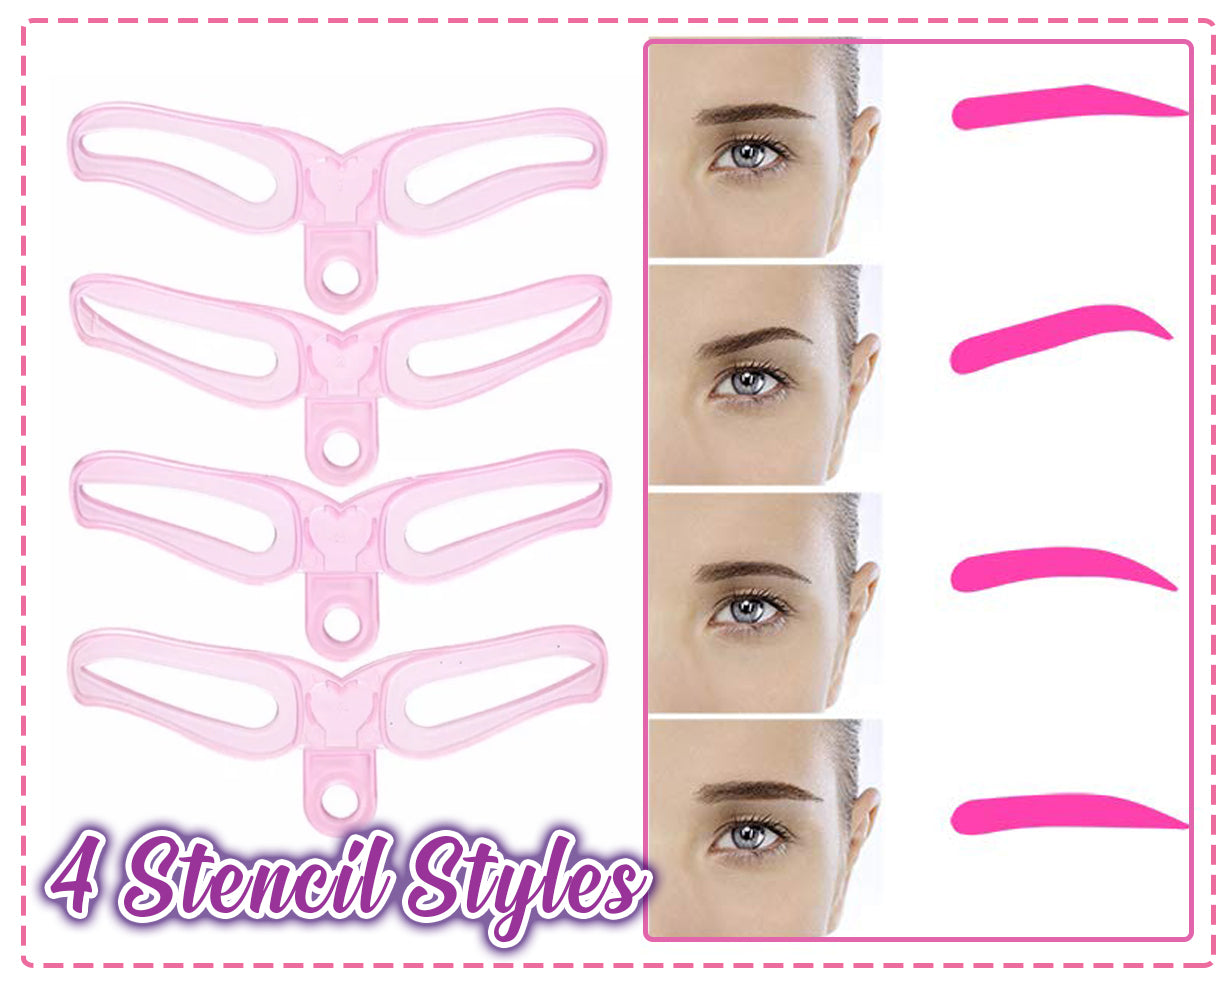 Instant Brow Shaping Stencil (4PCS/Set)